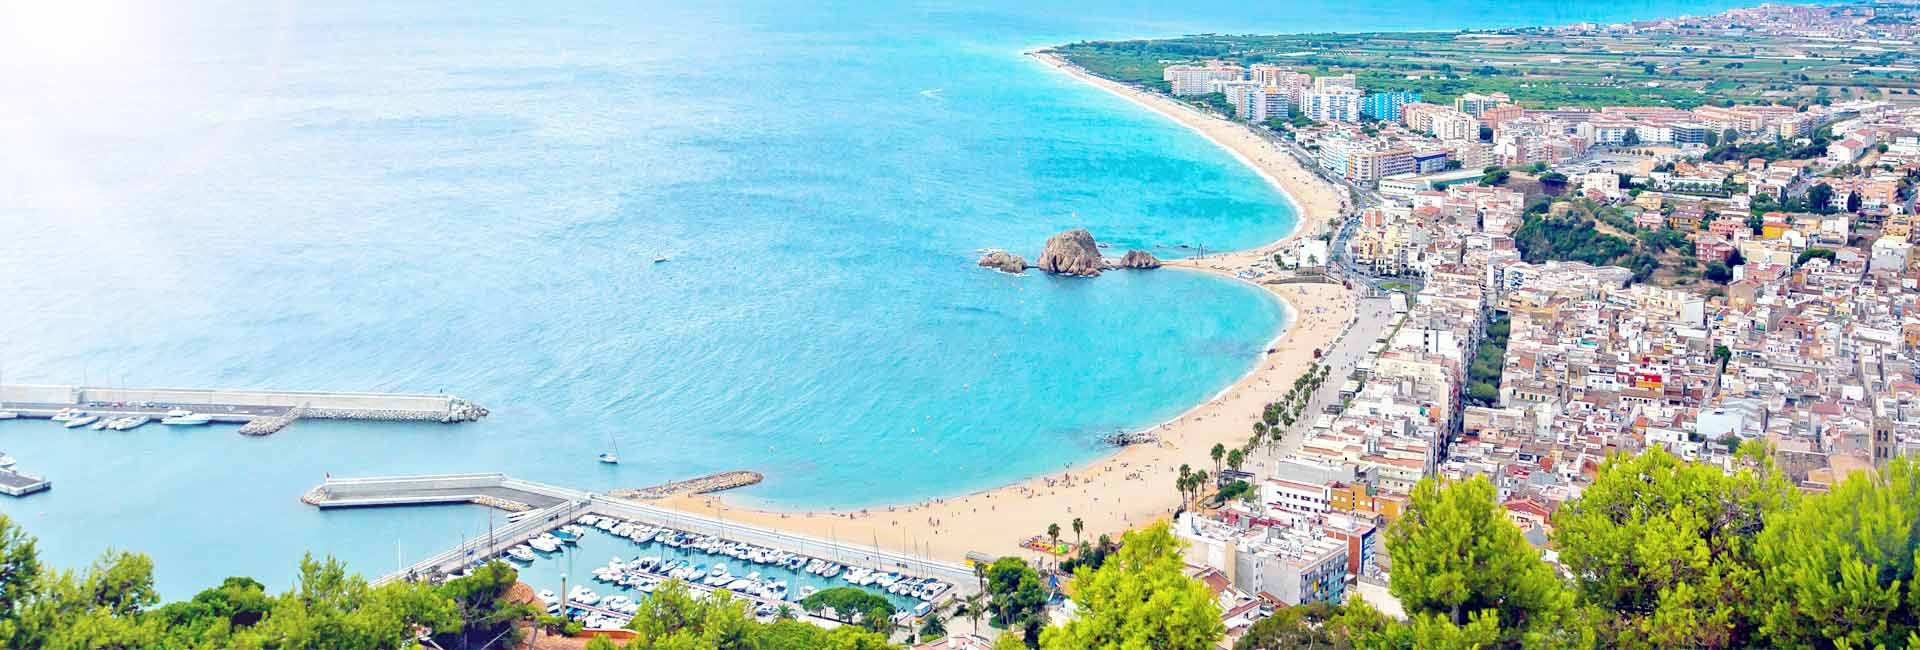 Apartments in the region/area of Gran Canaria Header Image